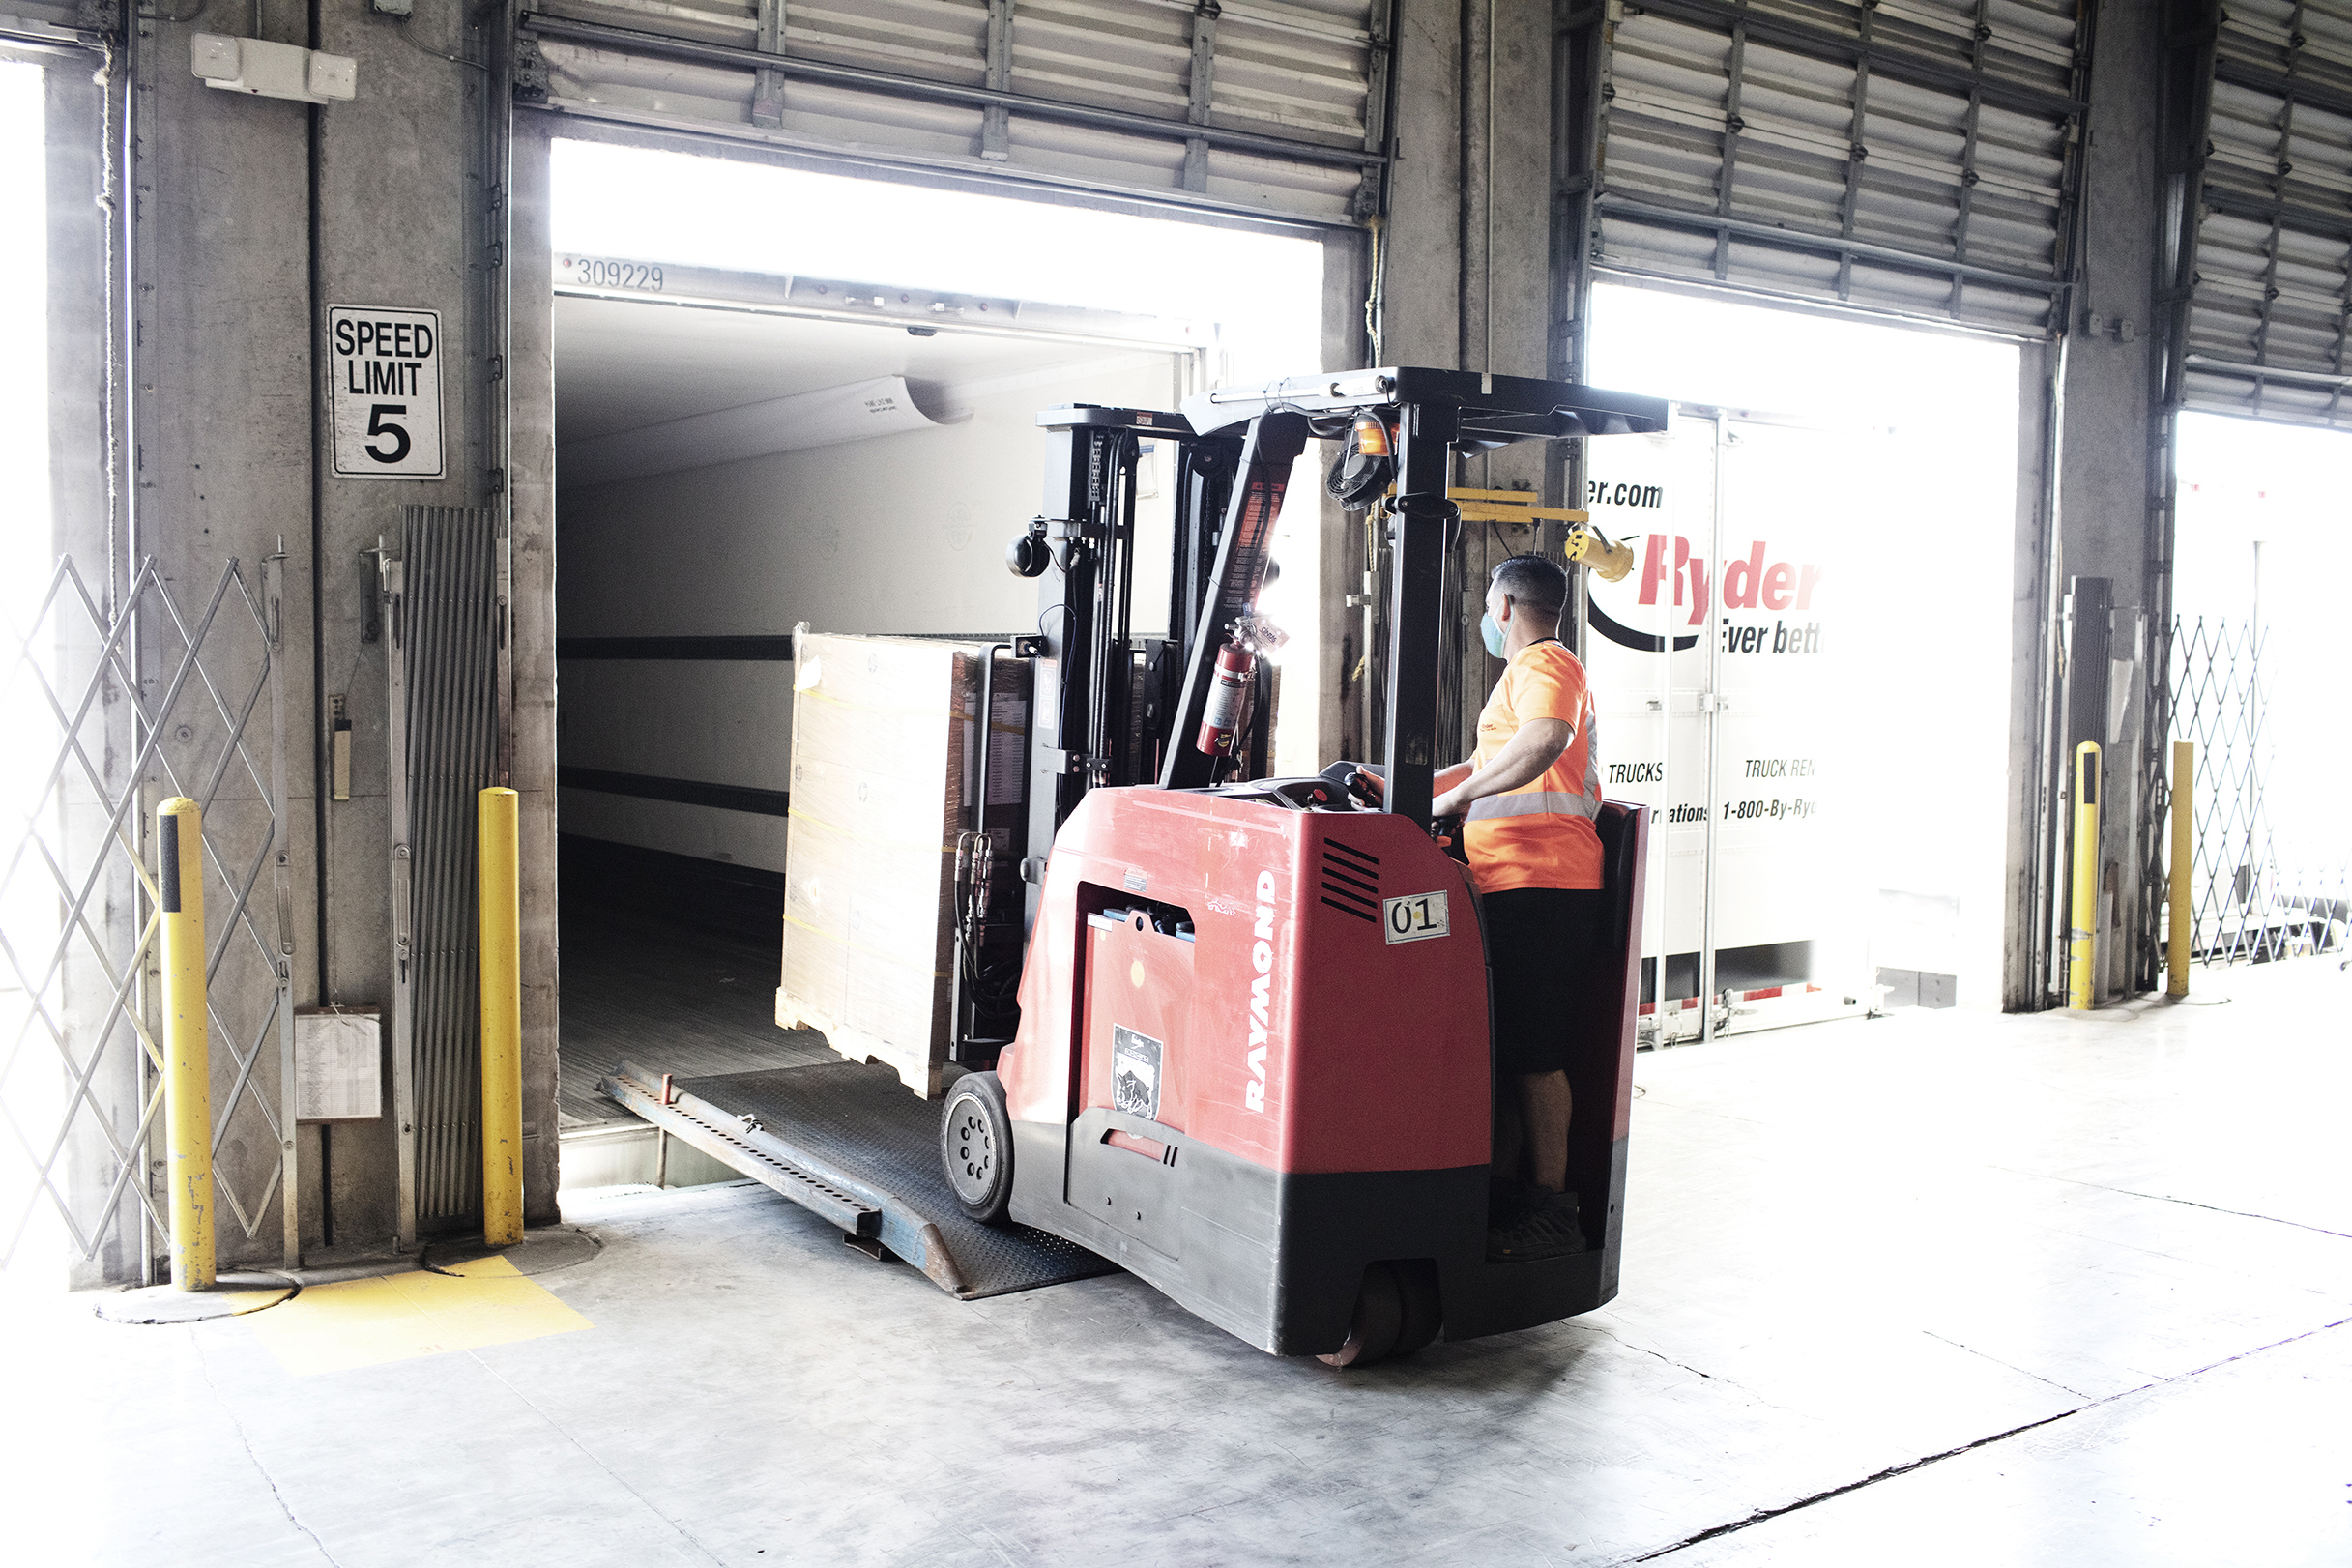 Ryder forklift operator moving supply chains forward leading to deliveries of essential items during this challenging time. (Photo: Business Wire)